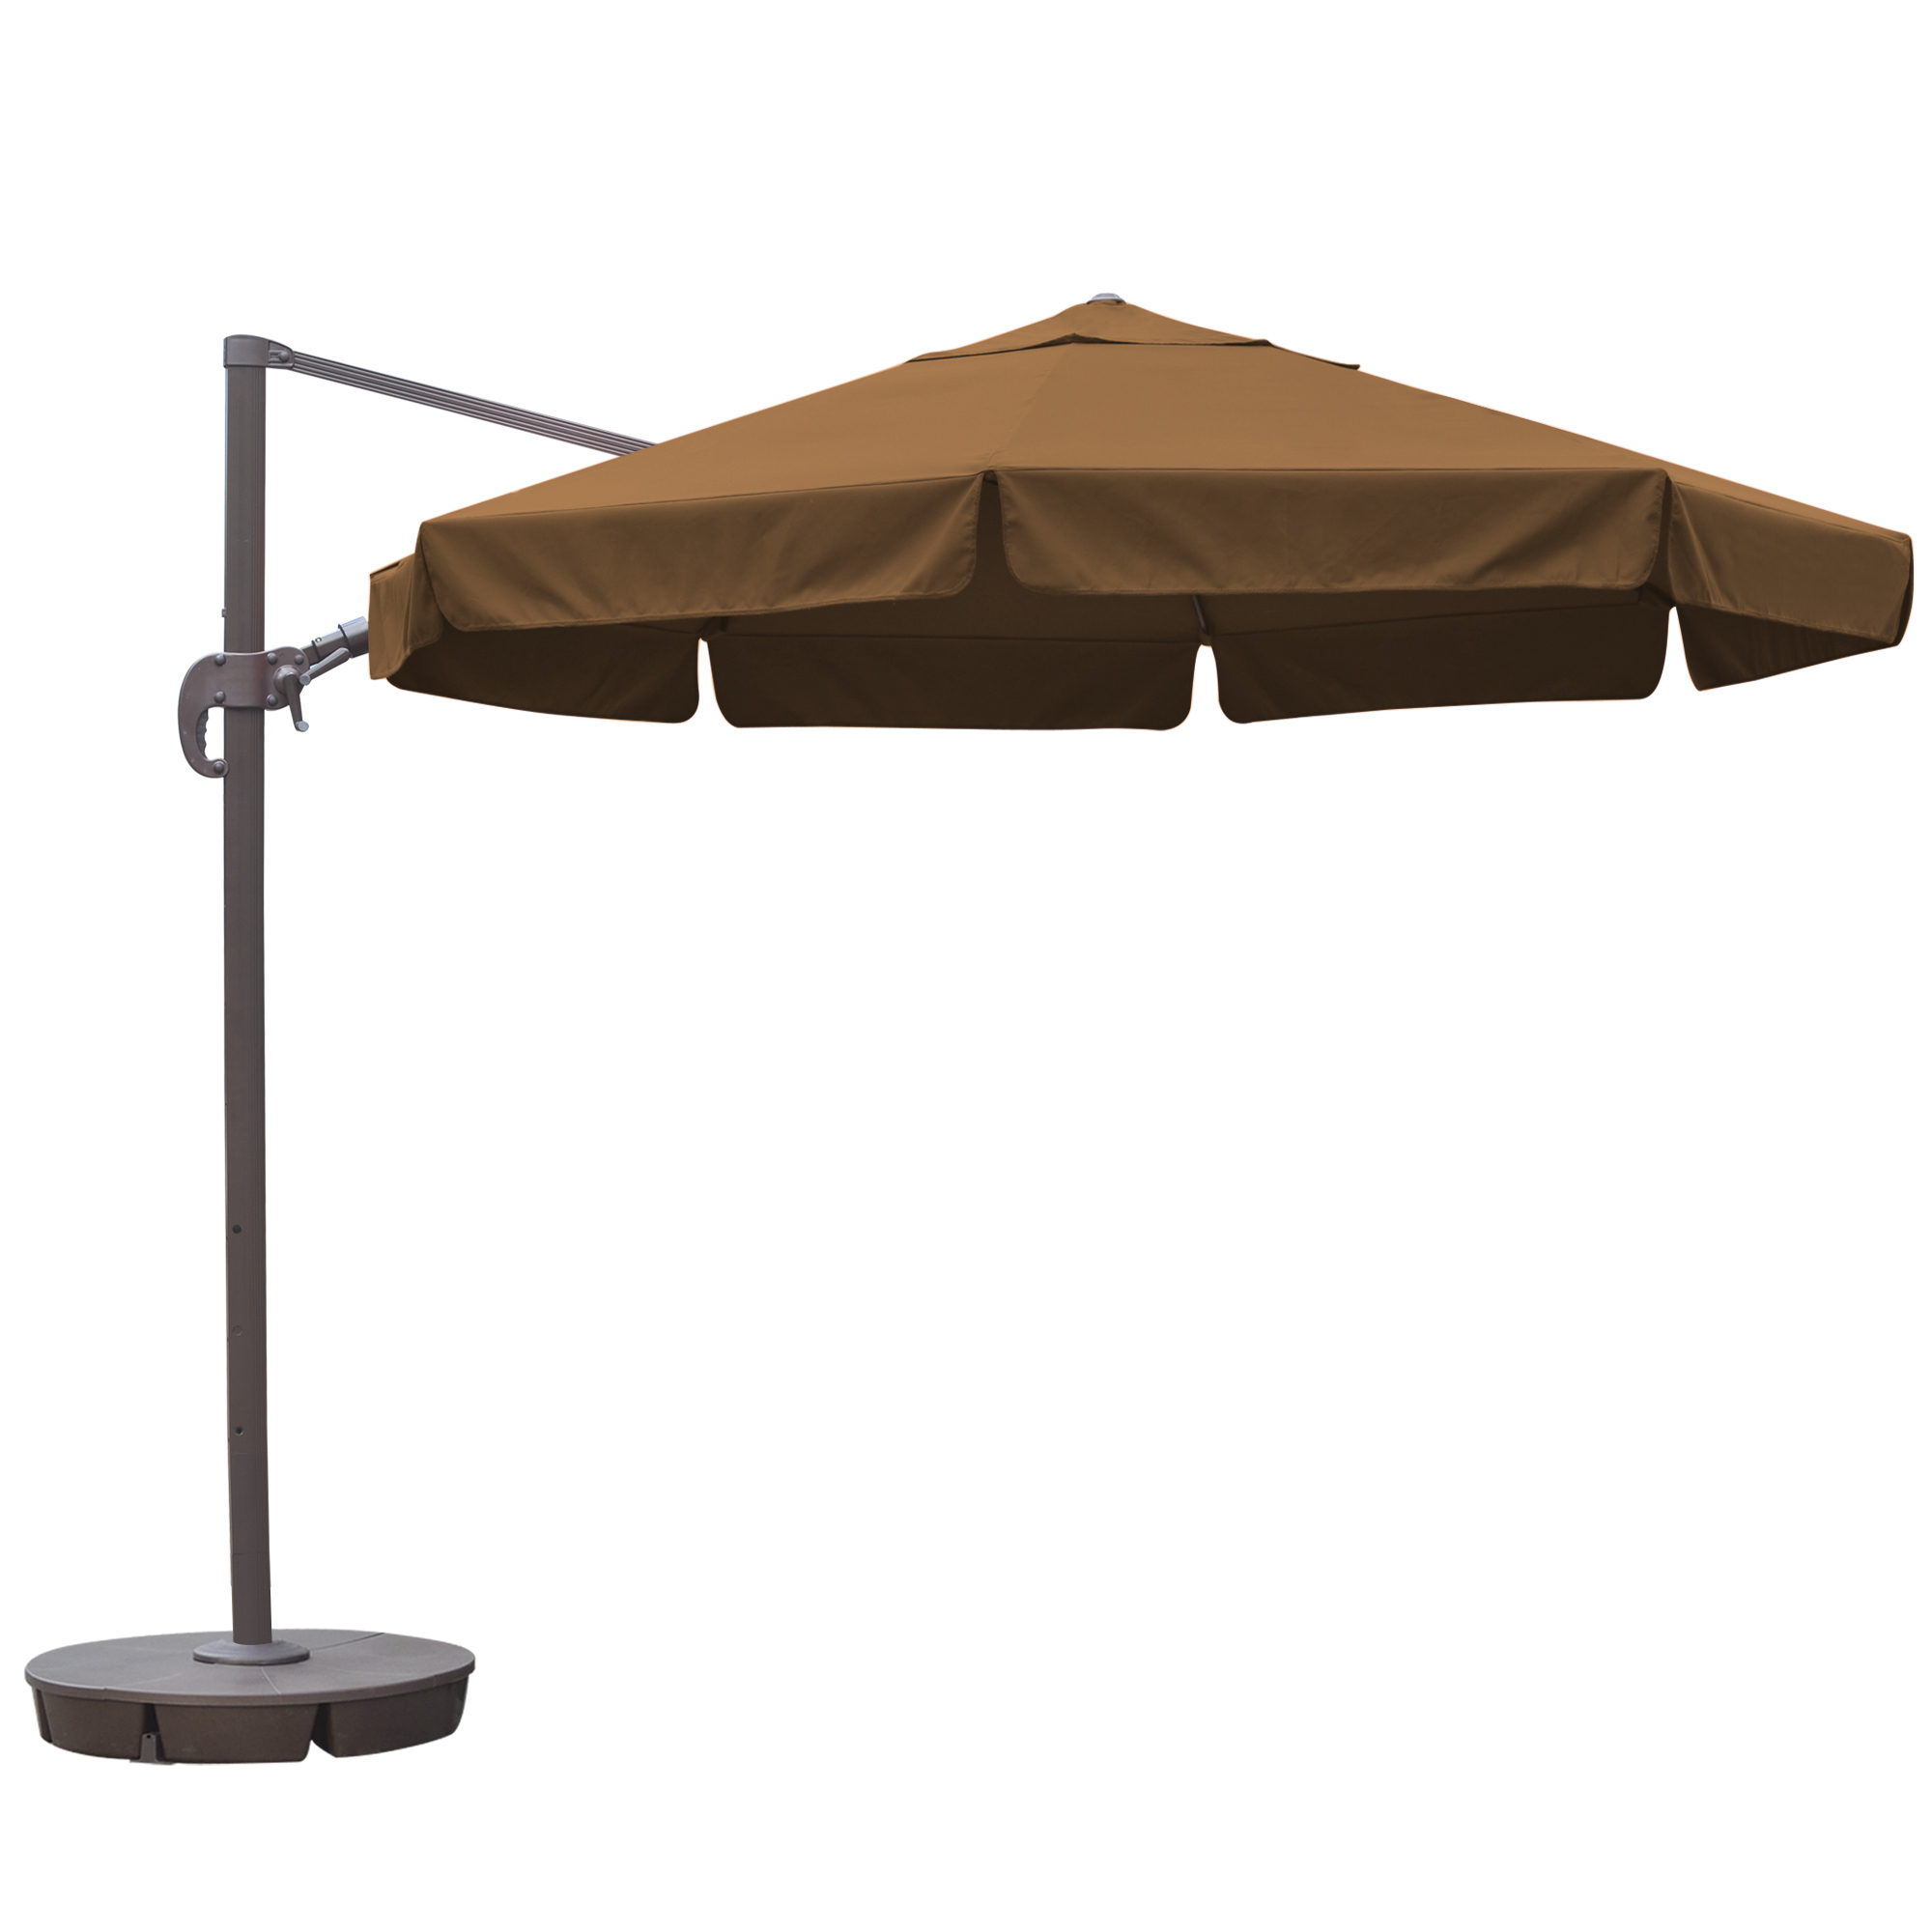 furniture dining home patio full depot patios with sets size set table umbrella of irradiate walmart cantilever umbrellas